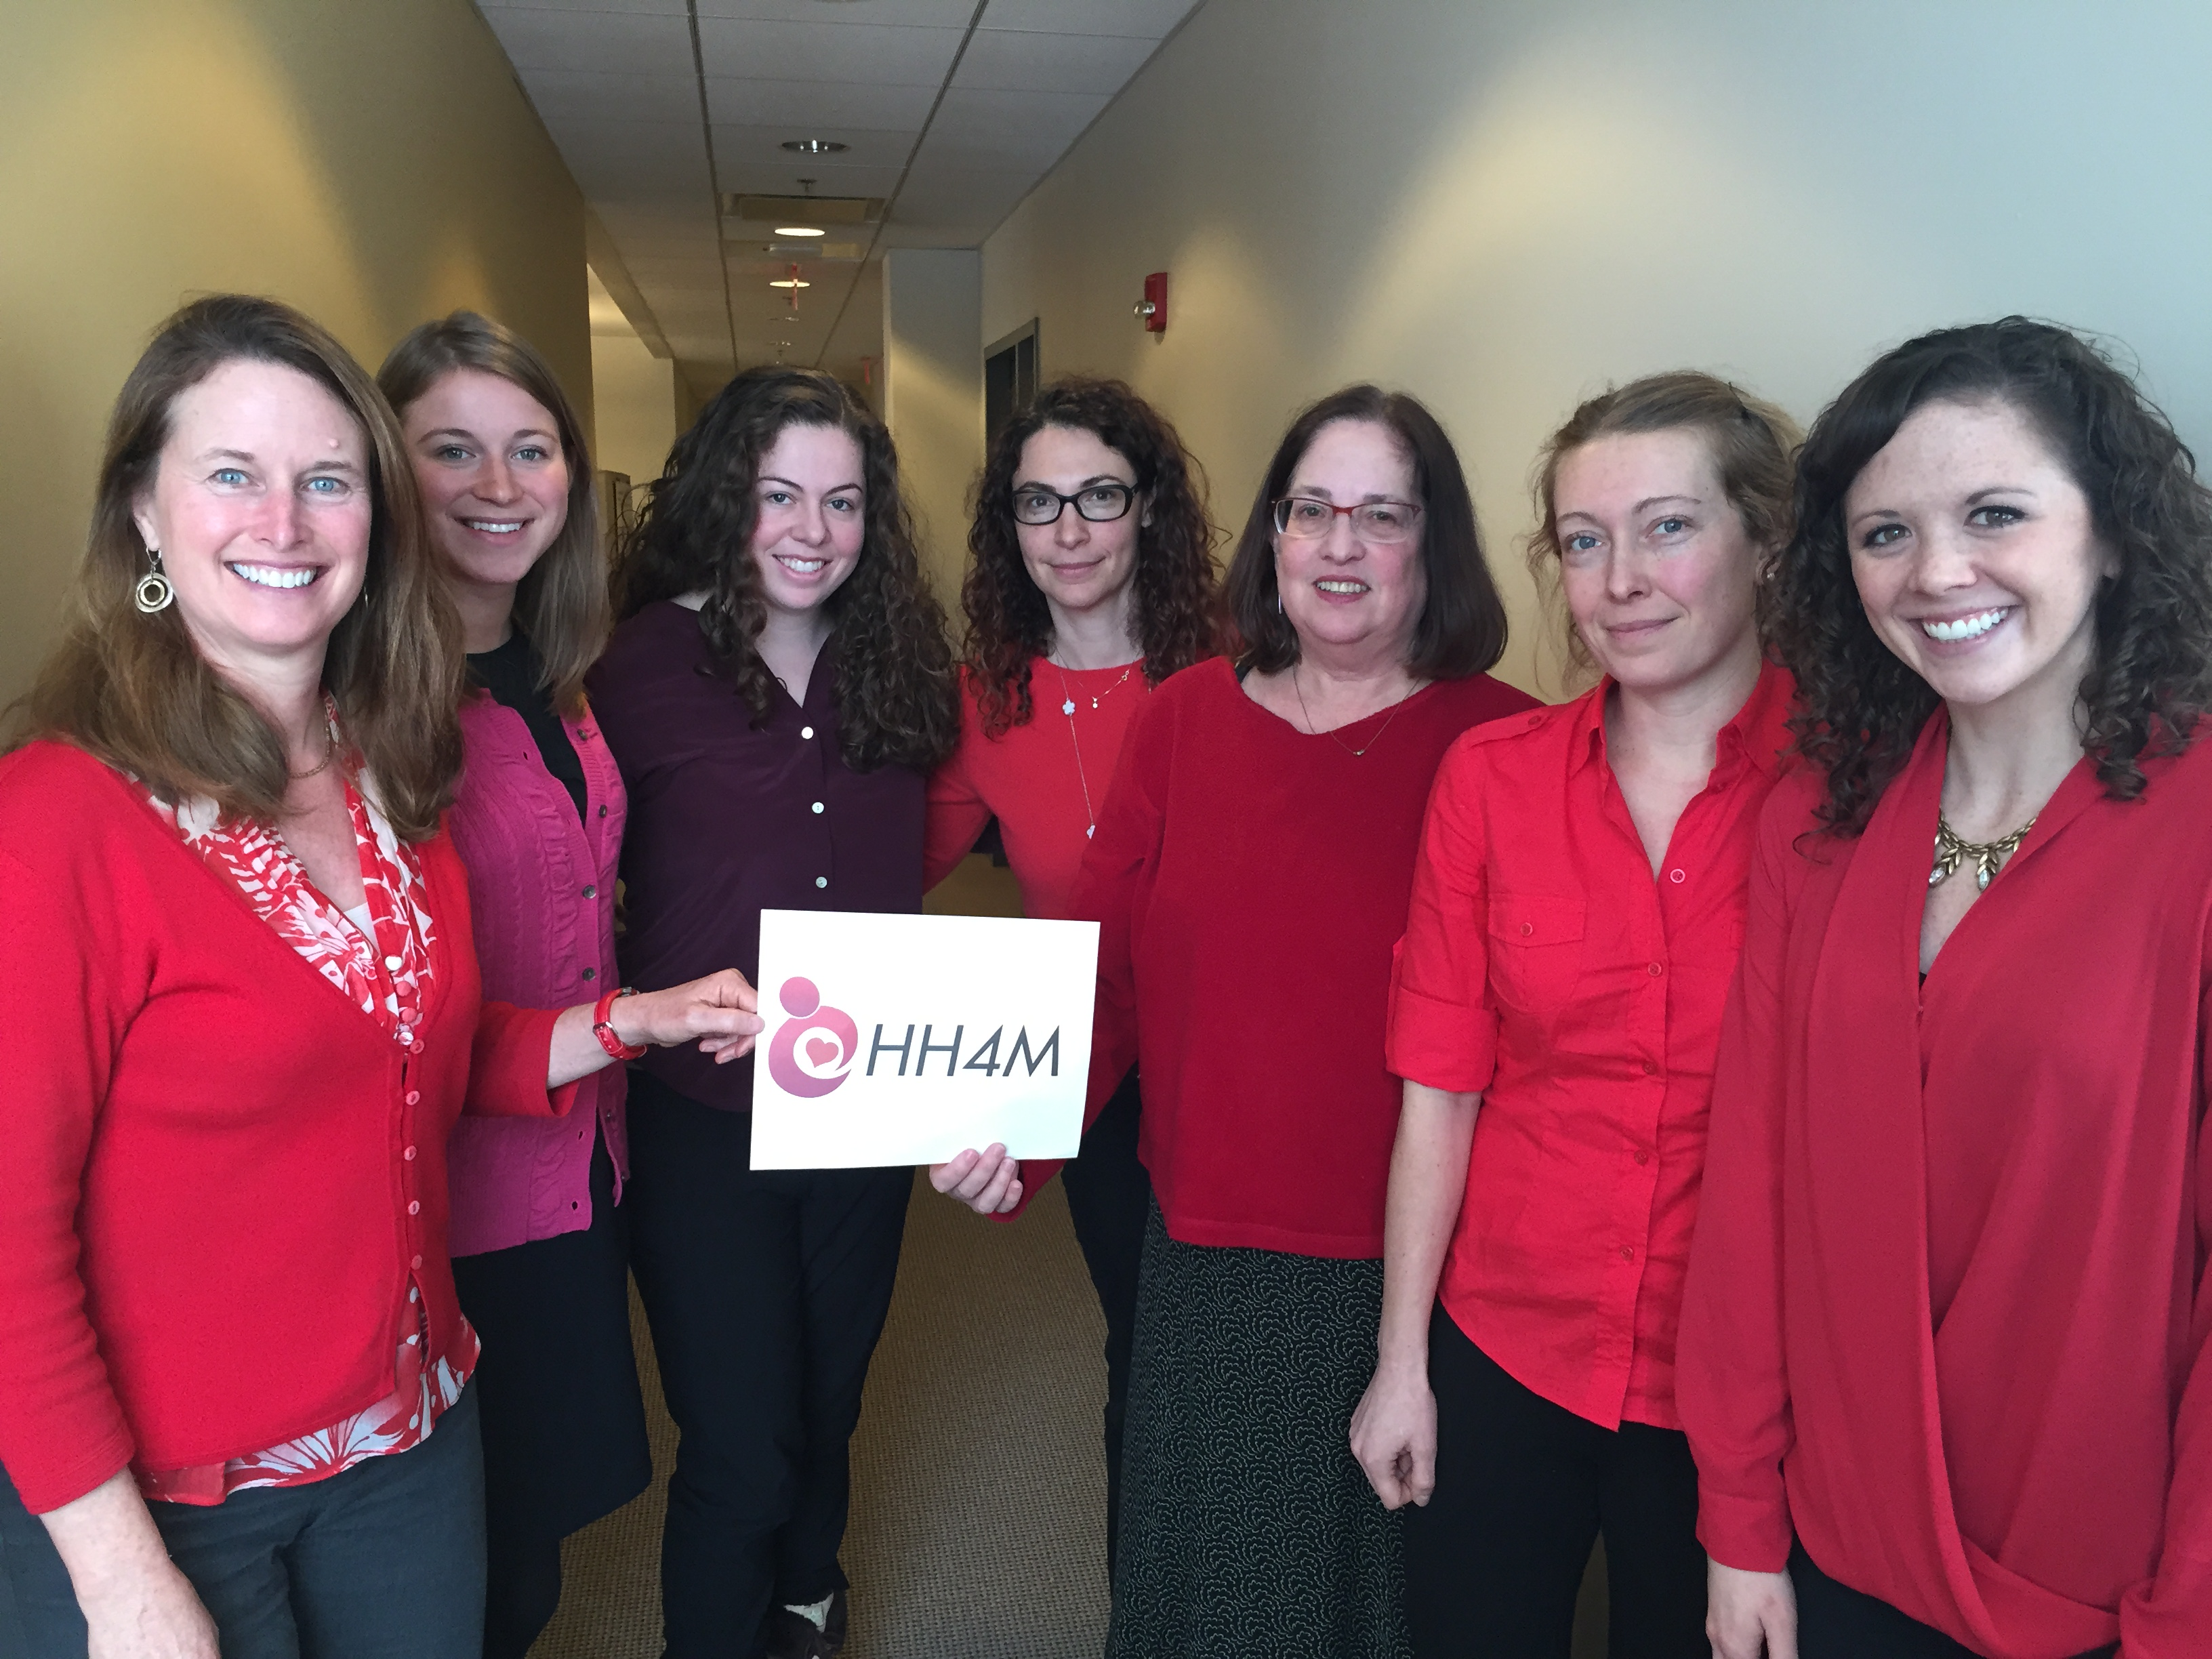 The Heart Health 4 Moms team, including Janet Rich-Edwards (far left) and Ellen Seely (third from right), wearing red to support heart health